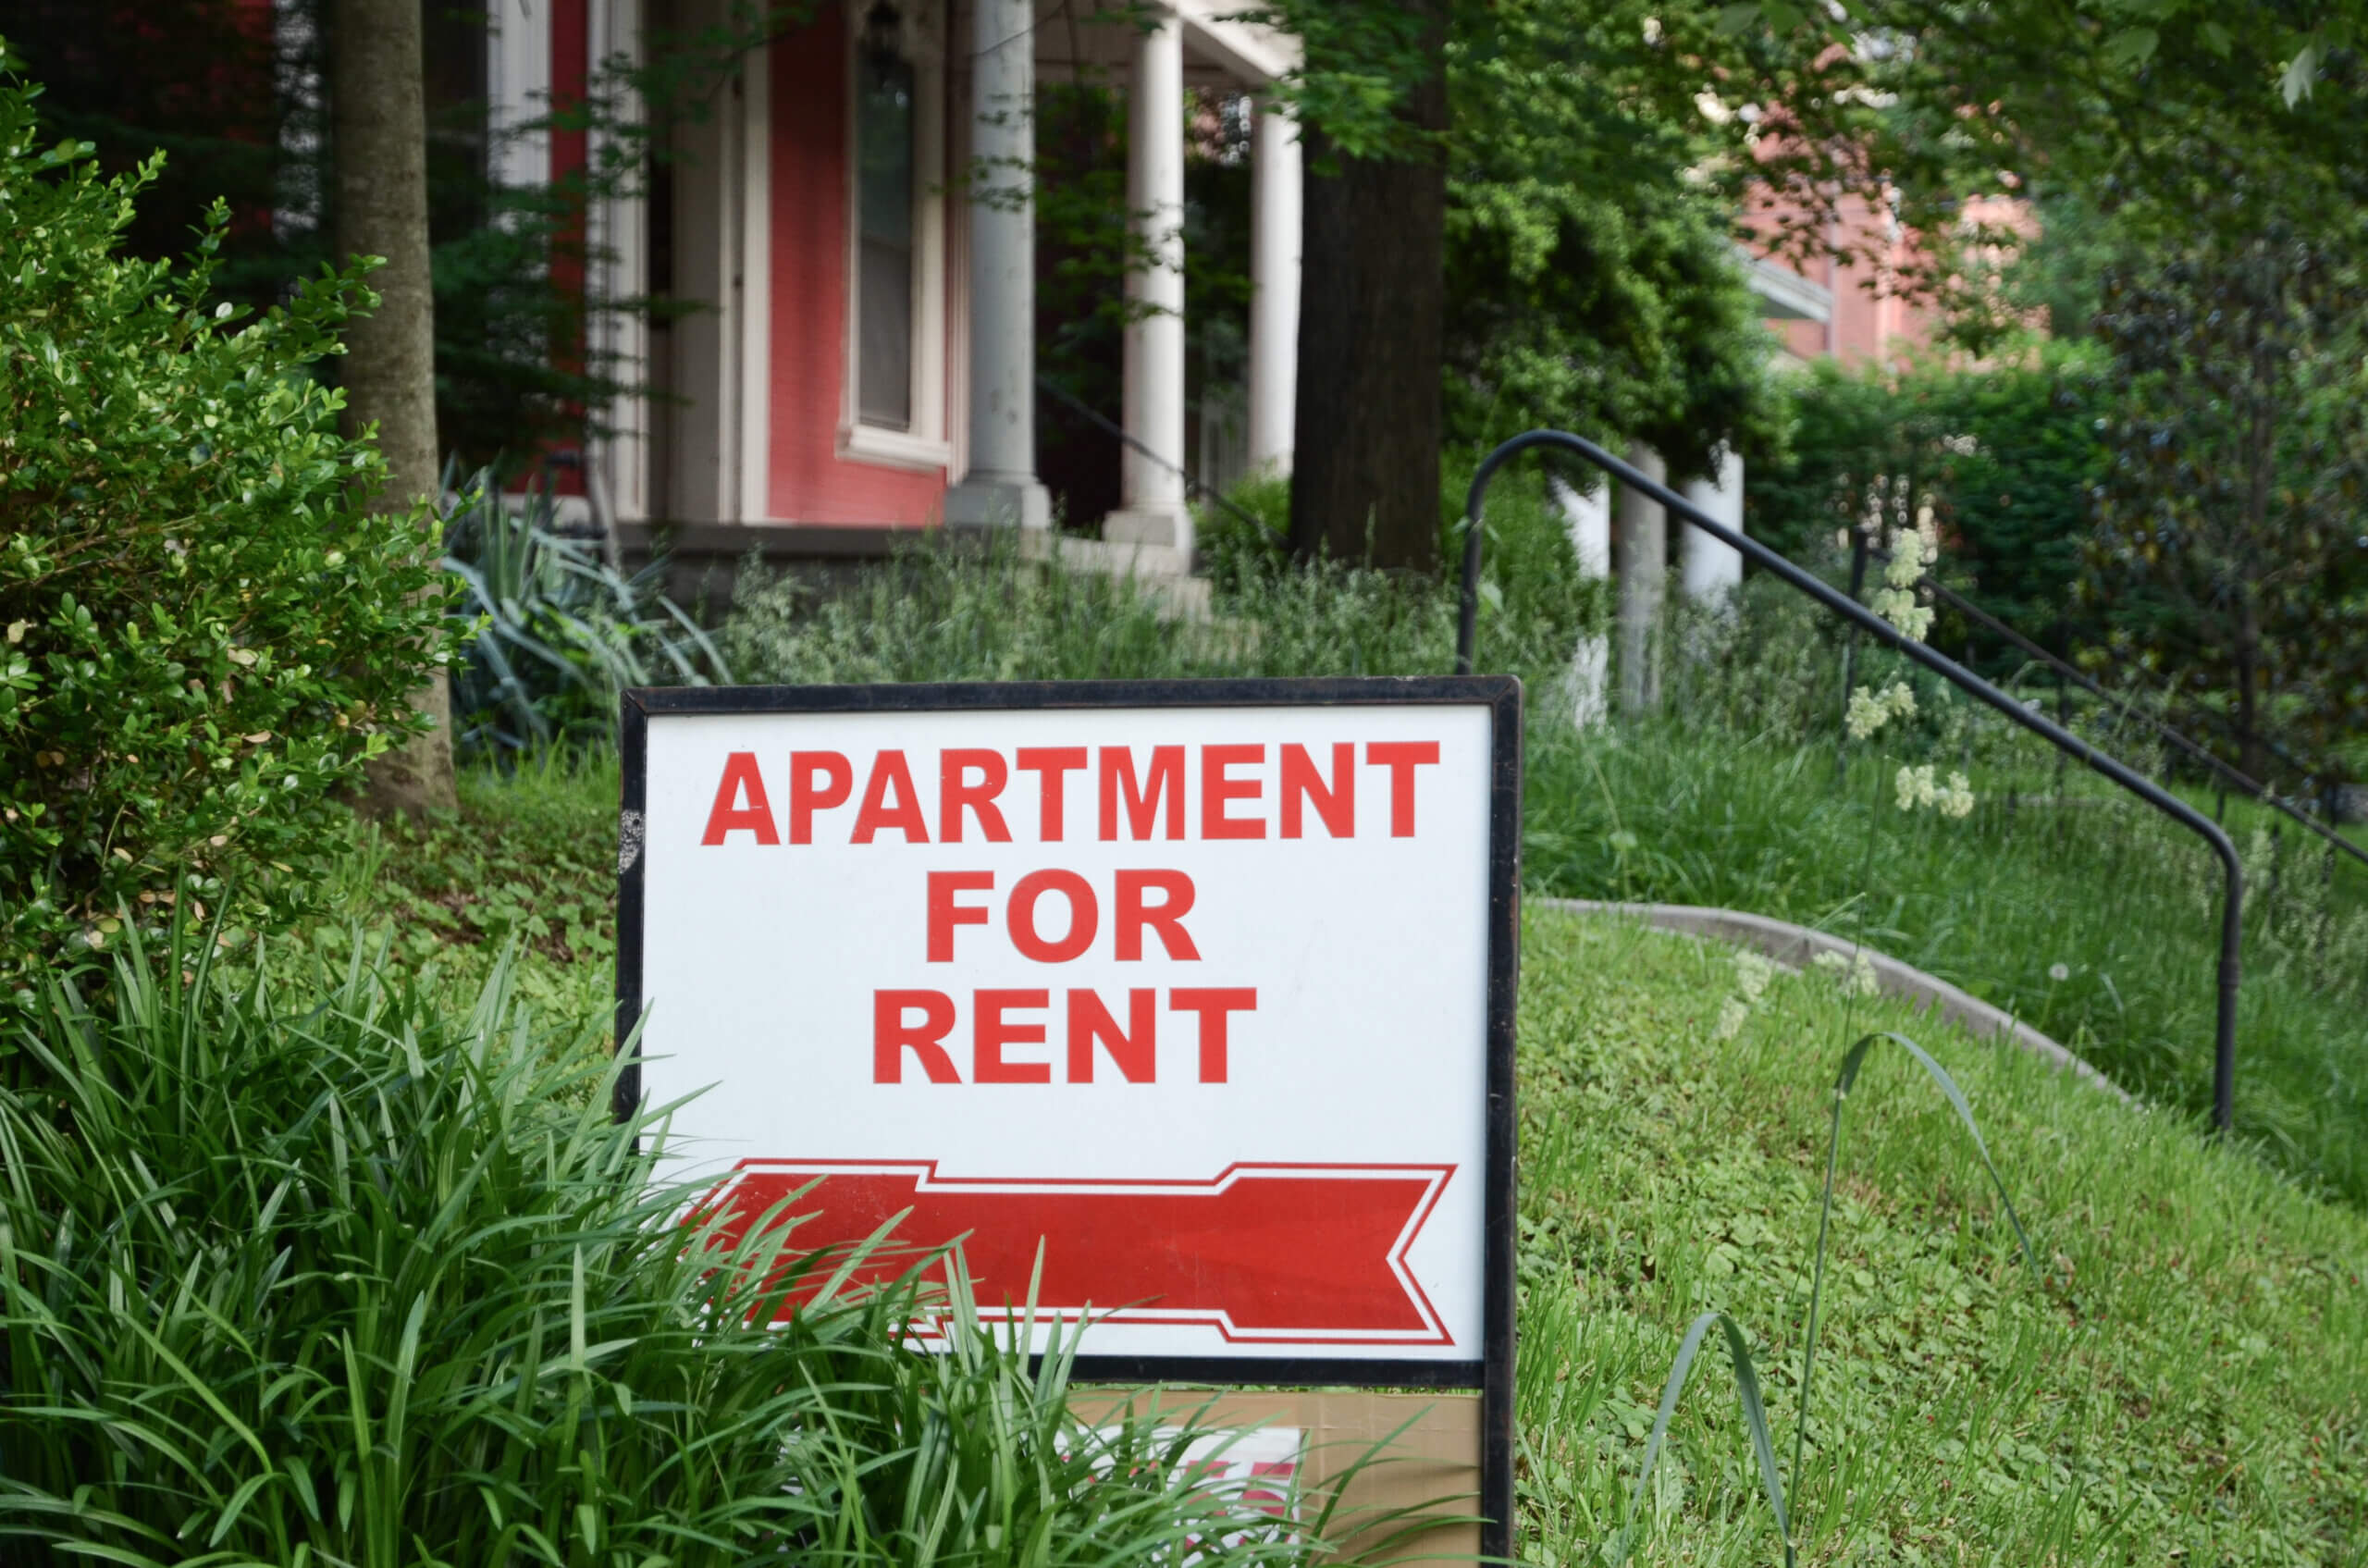 apartment for rent sign in yard